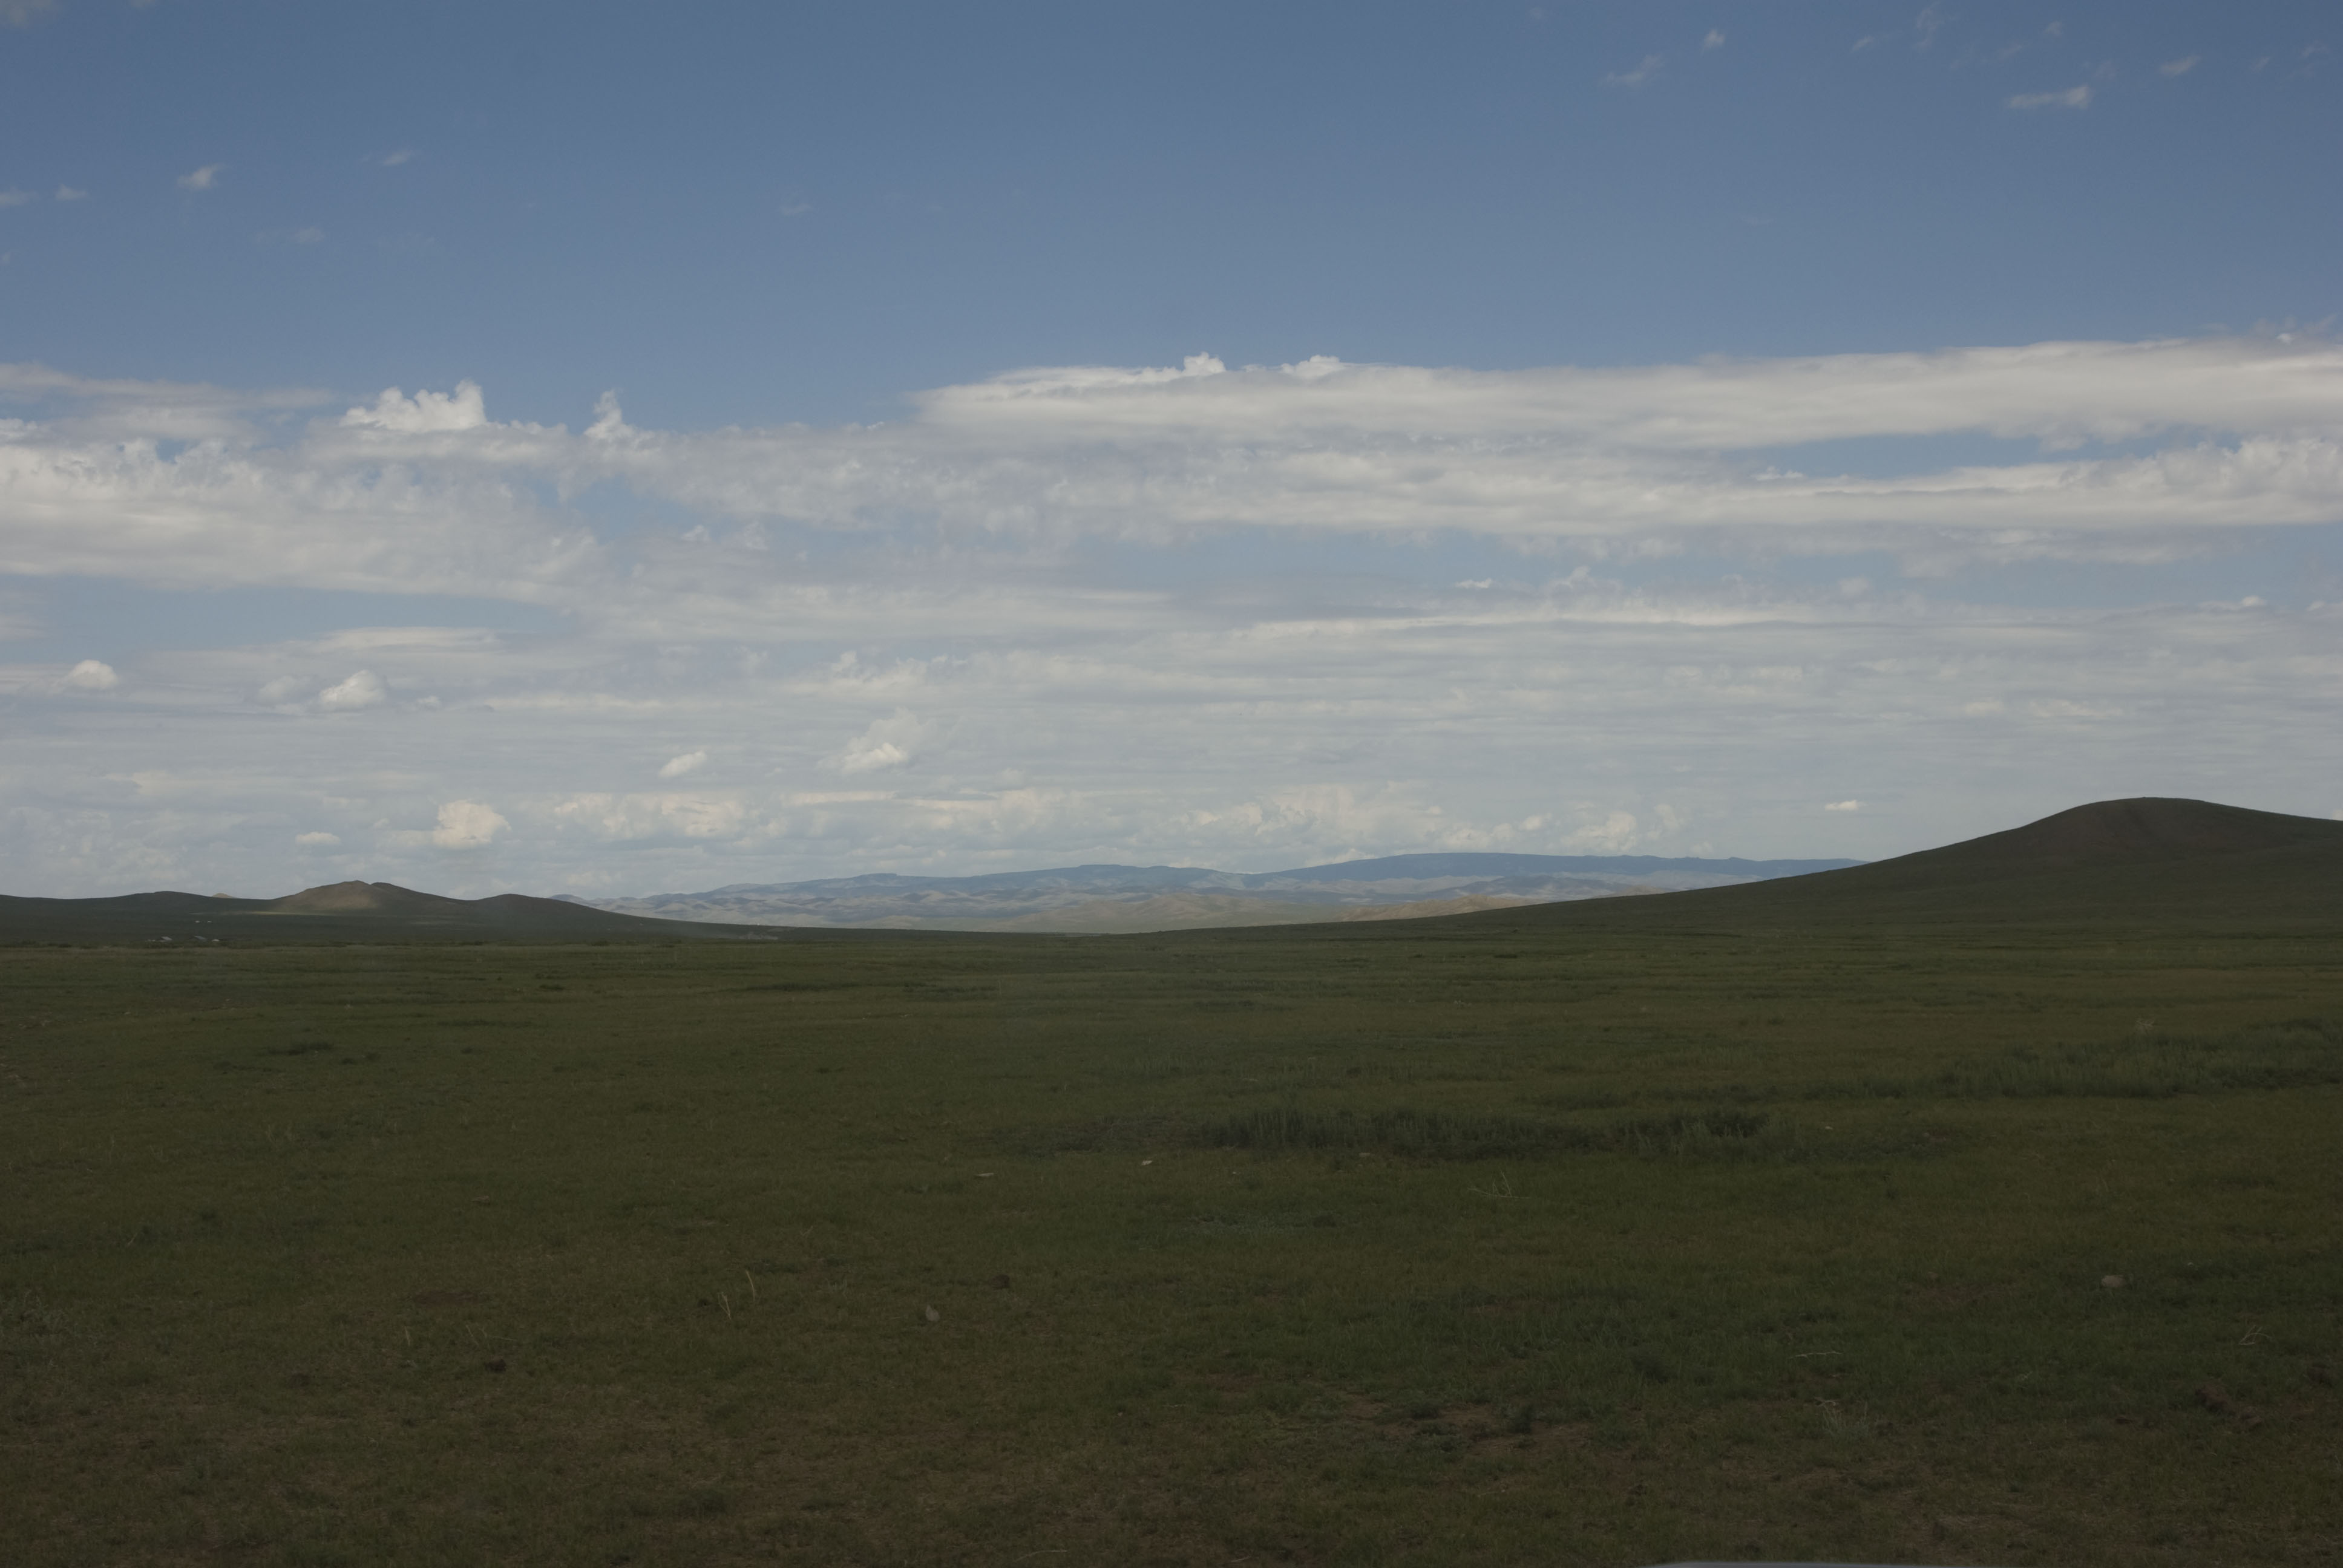 Bogd Khan Uul in the distance